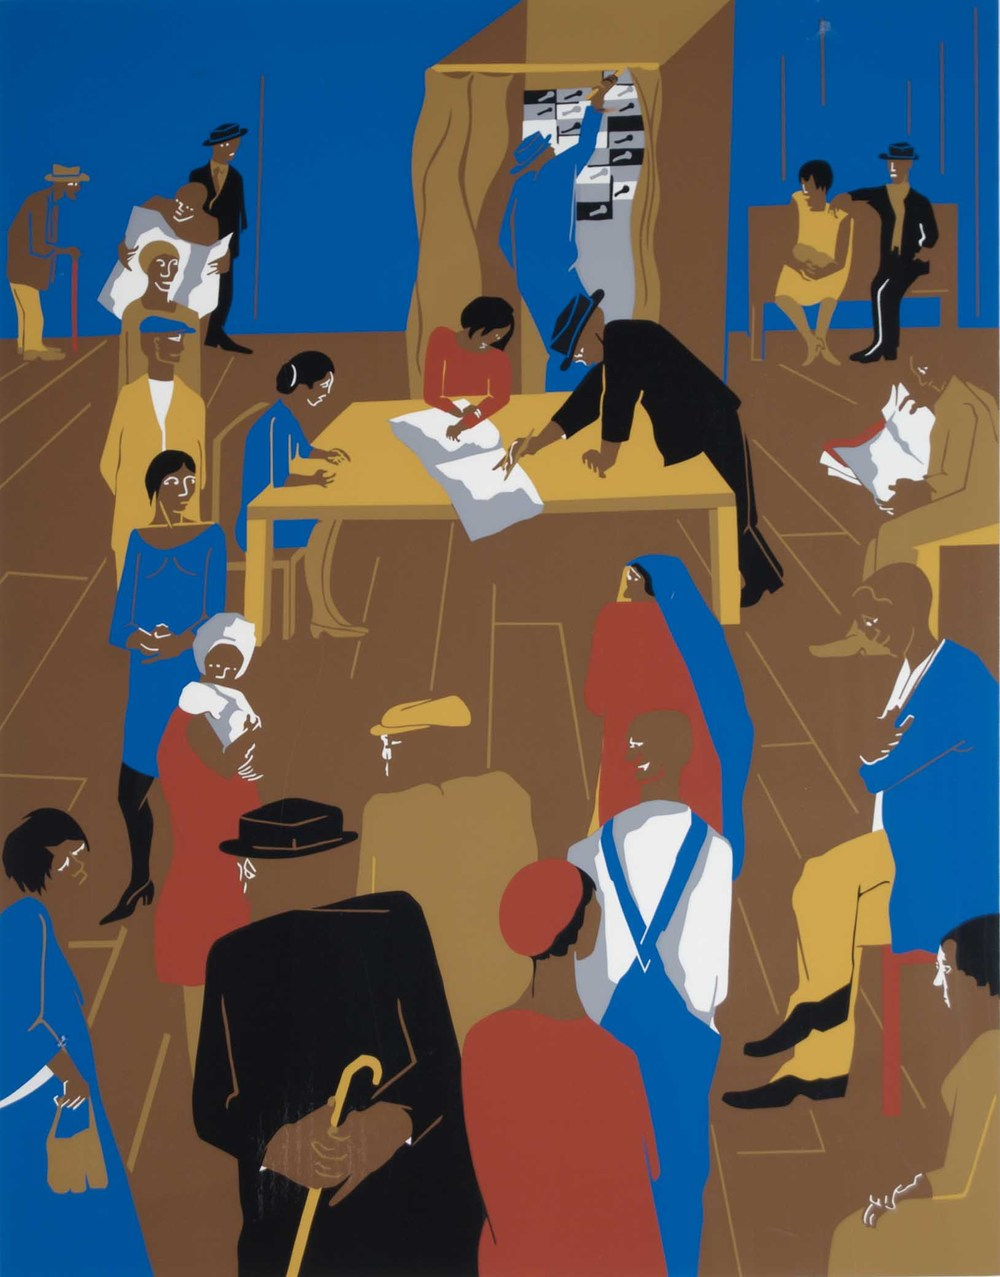 Jacob Lawrence, 1920s...The Migrants Arrive and Cast Their Ballots, 1974, Screenprint on domestic etching paper, Purchased through Douglass Screen Printers Serigraphy Collection Fund, Polk Museum of Art Permanent Collection 2008.29